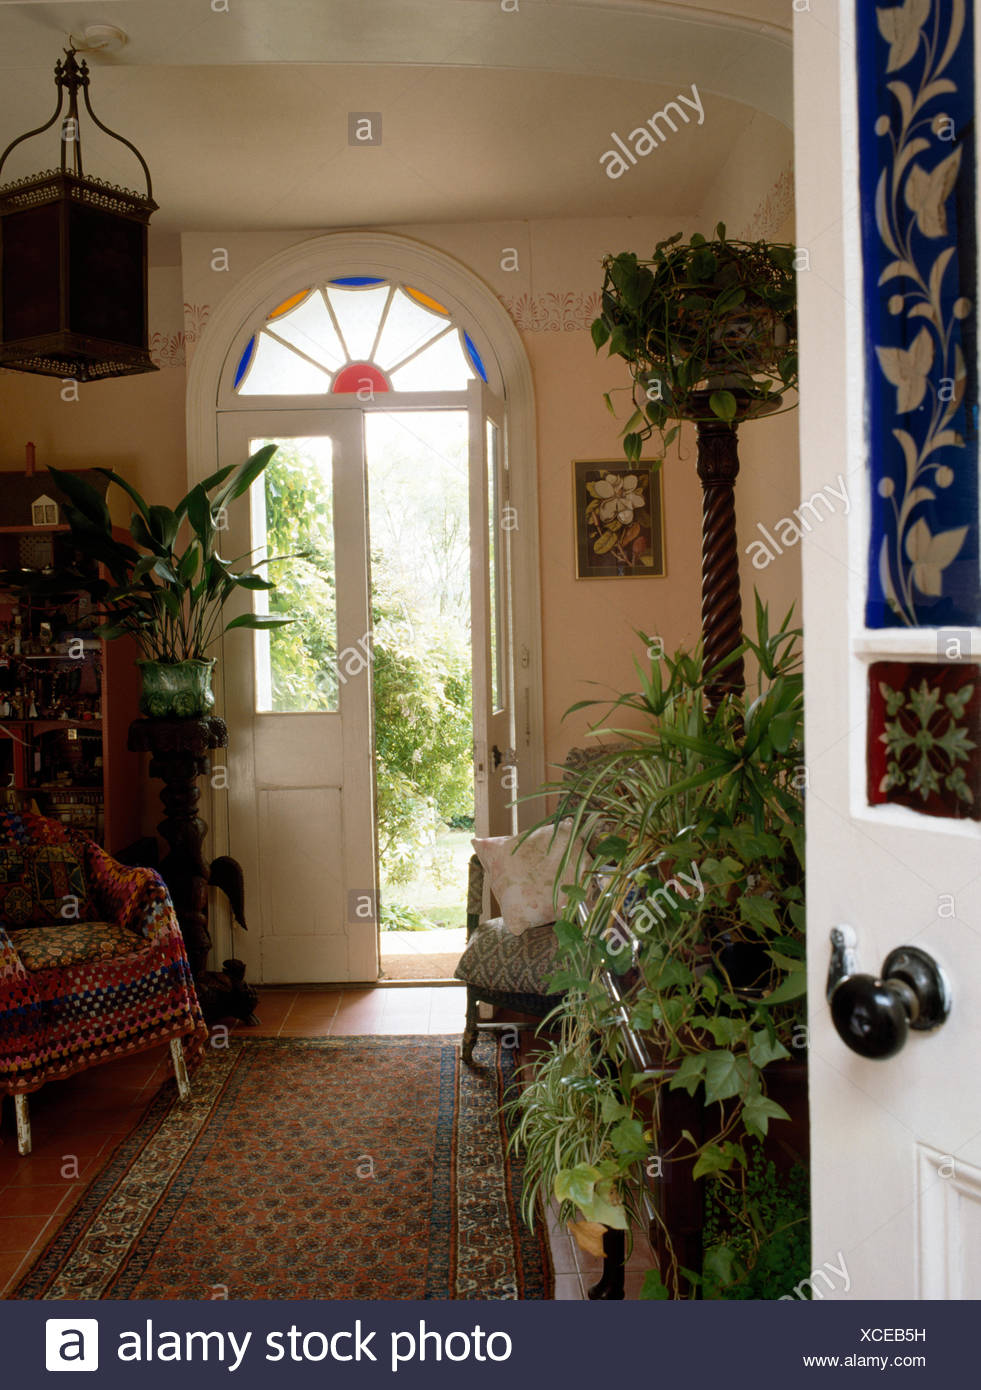 house front door open. Lush Green Houseplants In Early Nineties Victorian Hall With Open Front Door  - Stock Image House